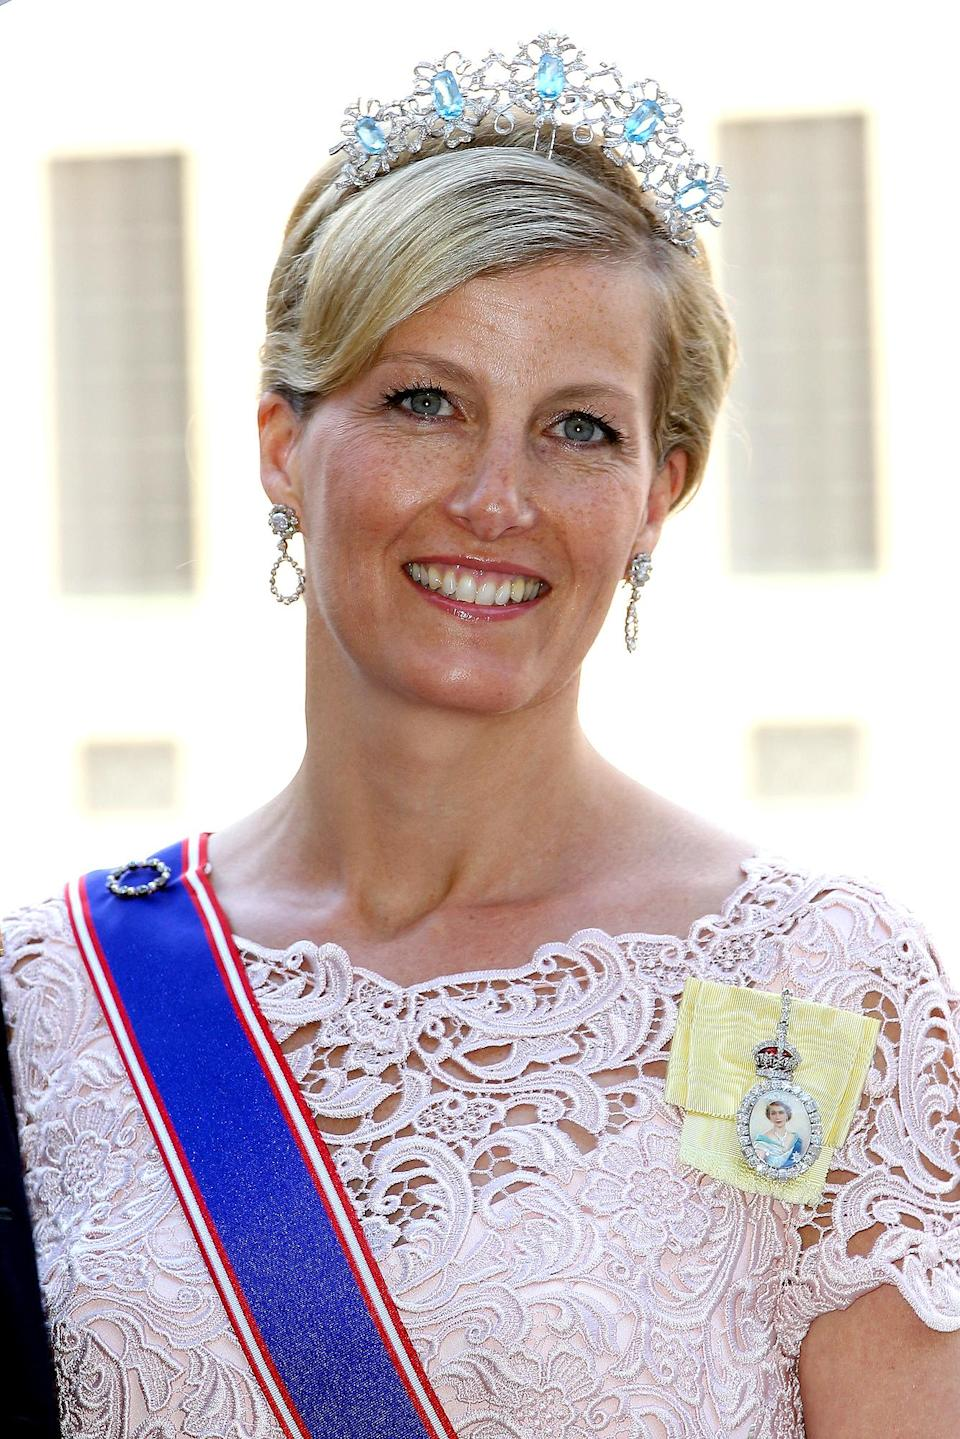 <p>Worn by the Queen during a tour of Canada in 1970, the aquamarine tiara stayed in the royal vault until the monarch's daughter-in-law Sophie, Countess of Wessex wore it to the pre-wedding dinner of the Hereditary Grand Duke of Luxembourg in 2012. The piece was also worn by Sophie at the 2013 wedding of Princess Madeleine of Sweden and a state banquet in 2014, leading many to assume it is on permanent loan to the Queen's daughter-in-law.</p>